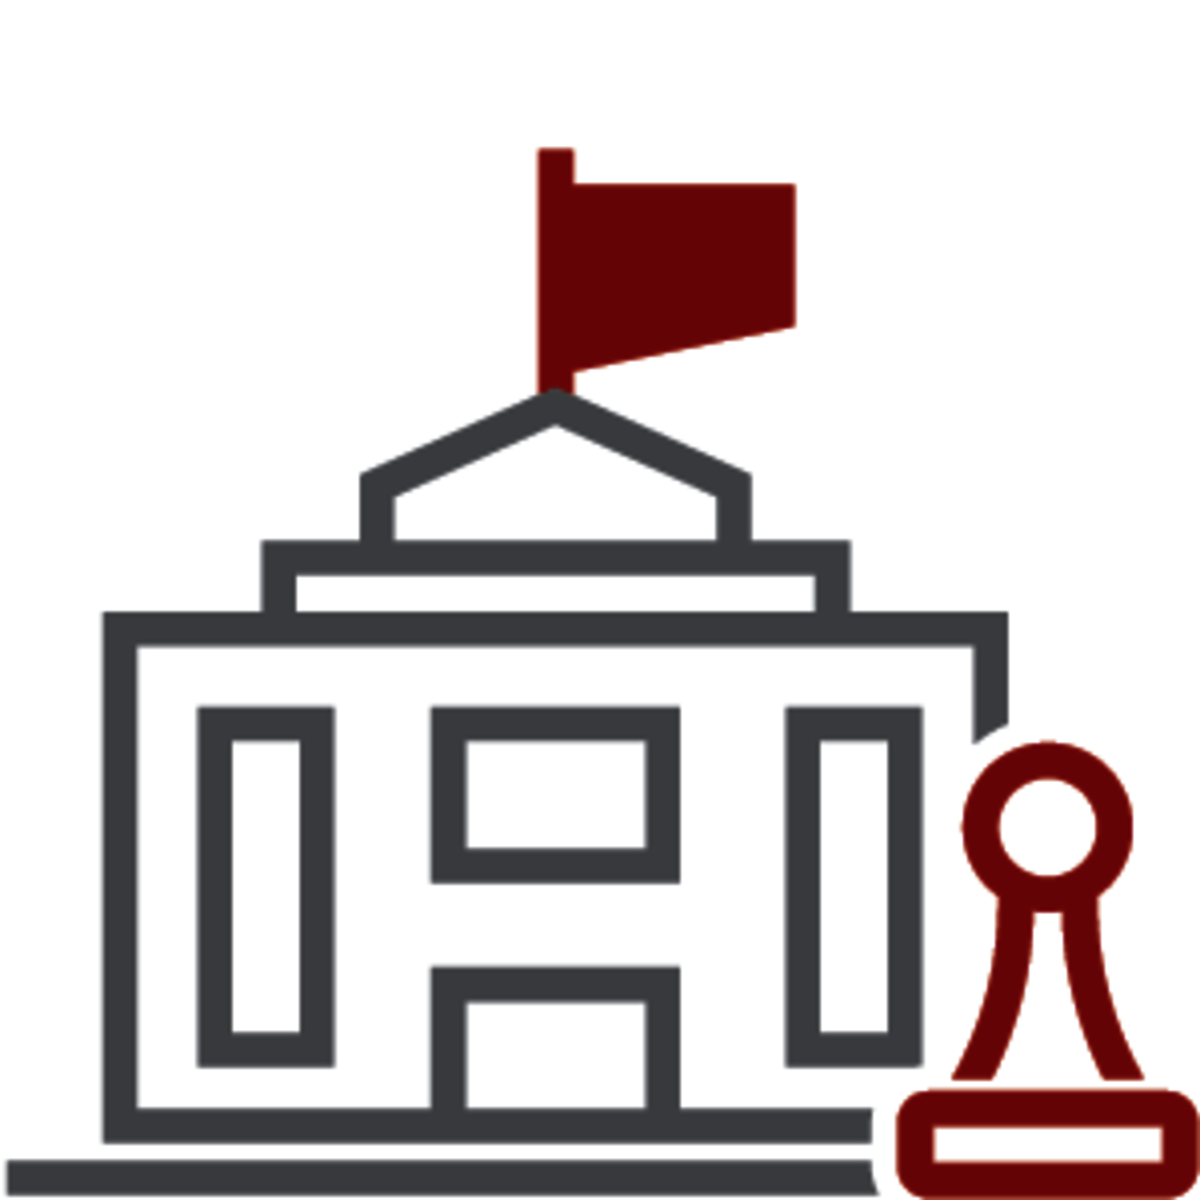 LT Lawtank - Certified translation - Cantonal state chancellery